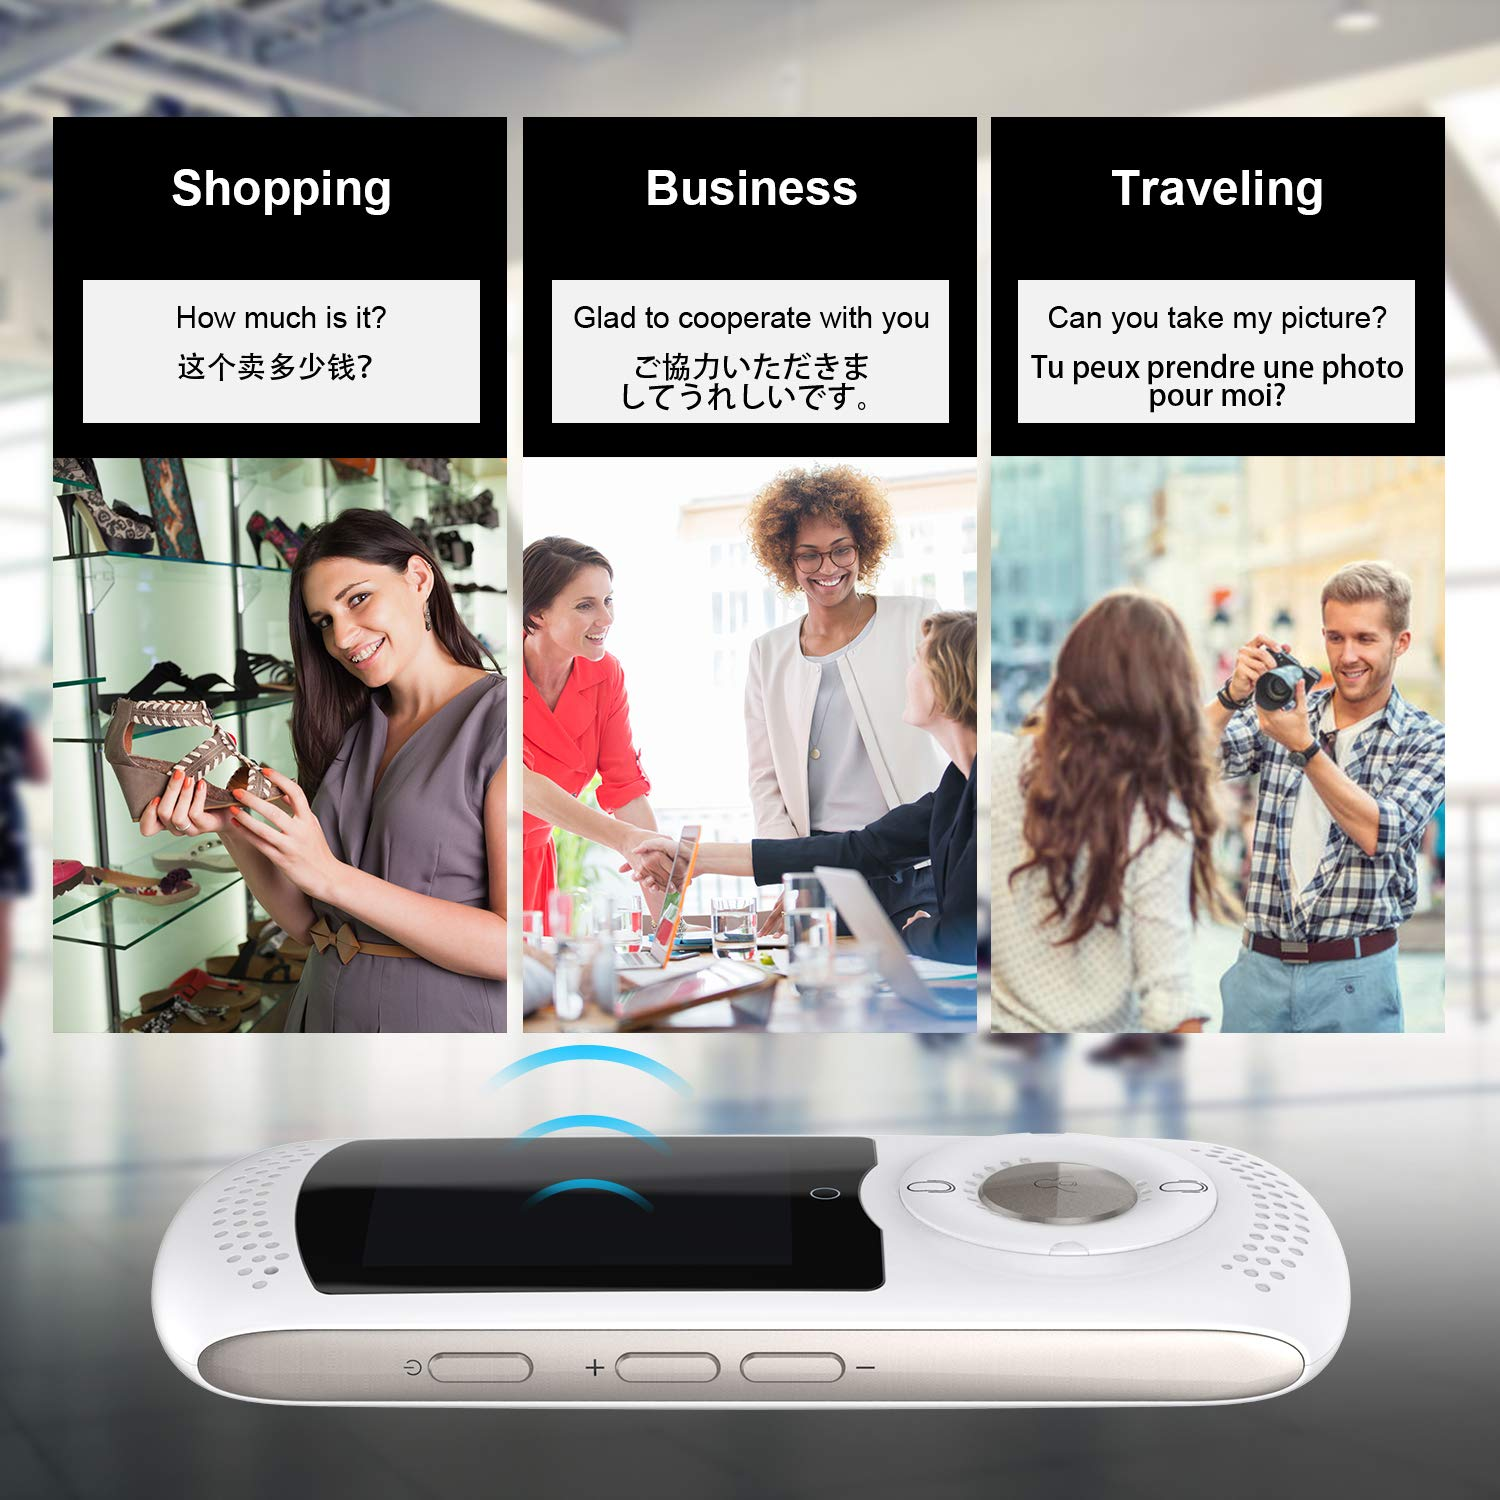 Weikin Portable Language Translator Device 2.0inch Touch Screen Smart Real Time Instant Voice Translation Support 45 Languages WiFi and 4G Dual Mode for Learning Travel Shopping Business(White) … by weikin (Image #5)